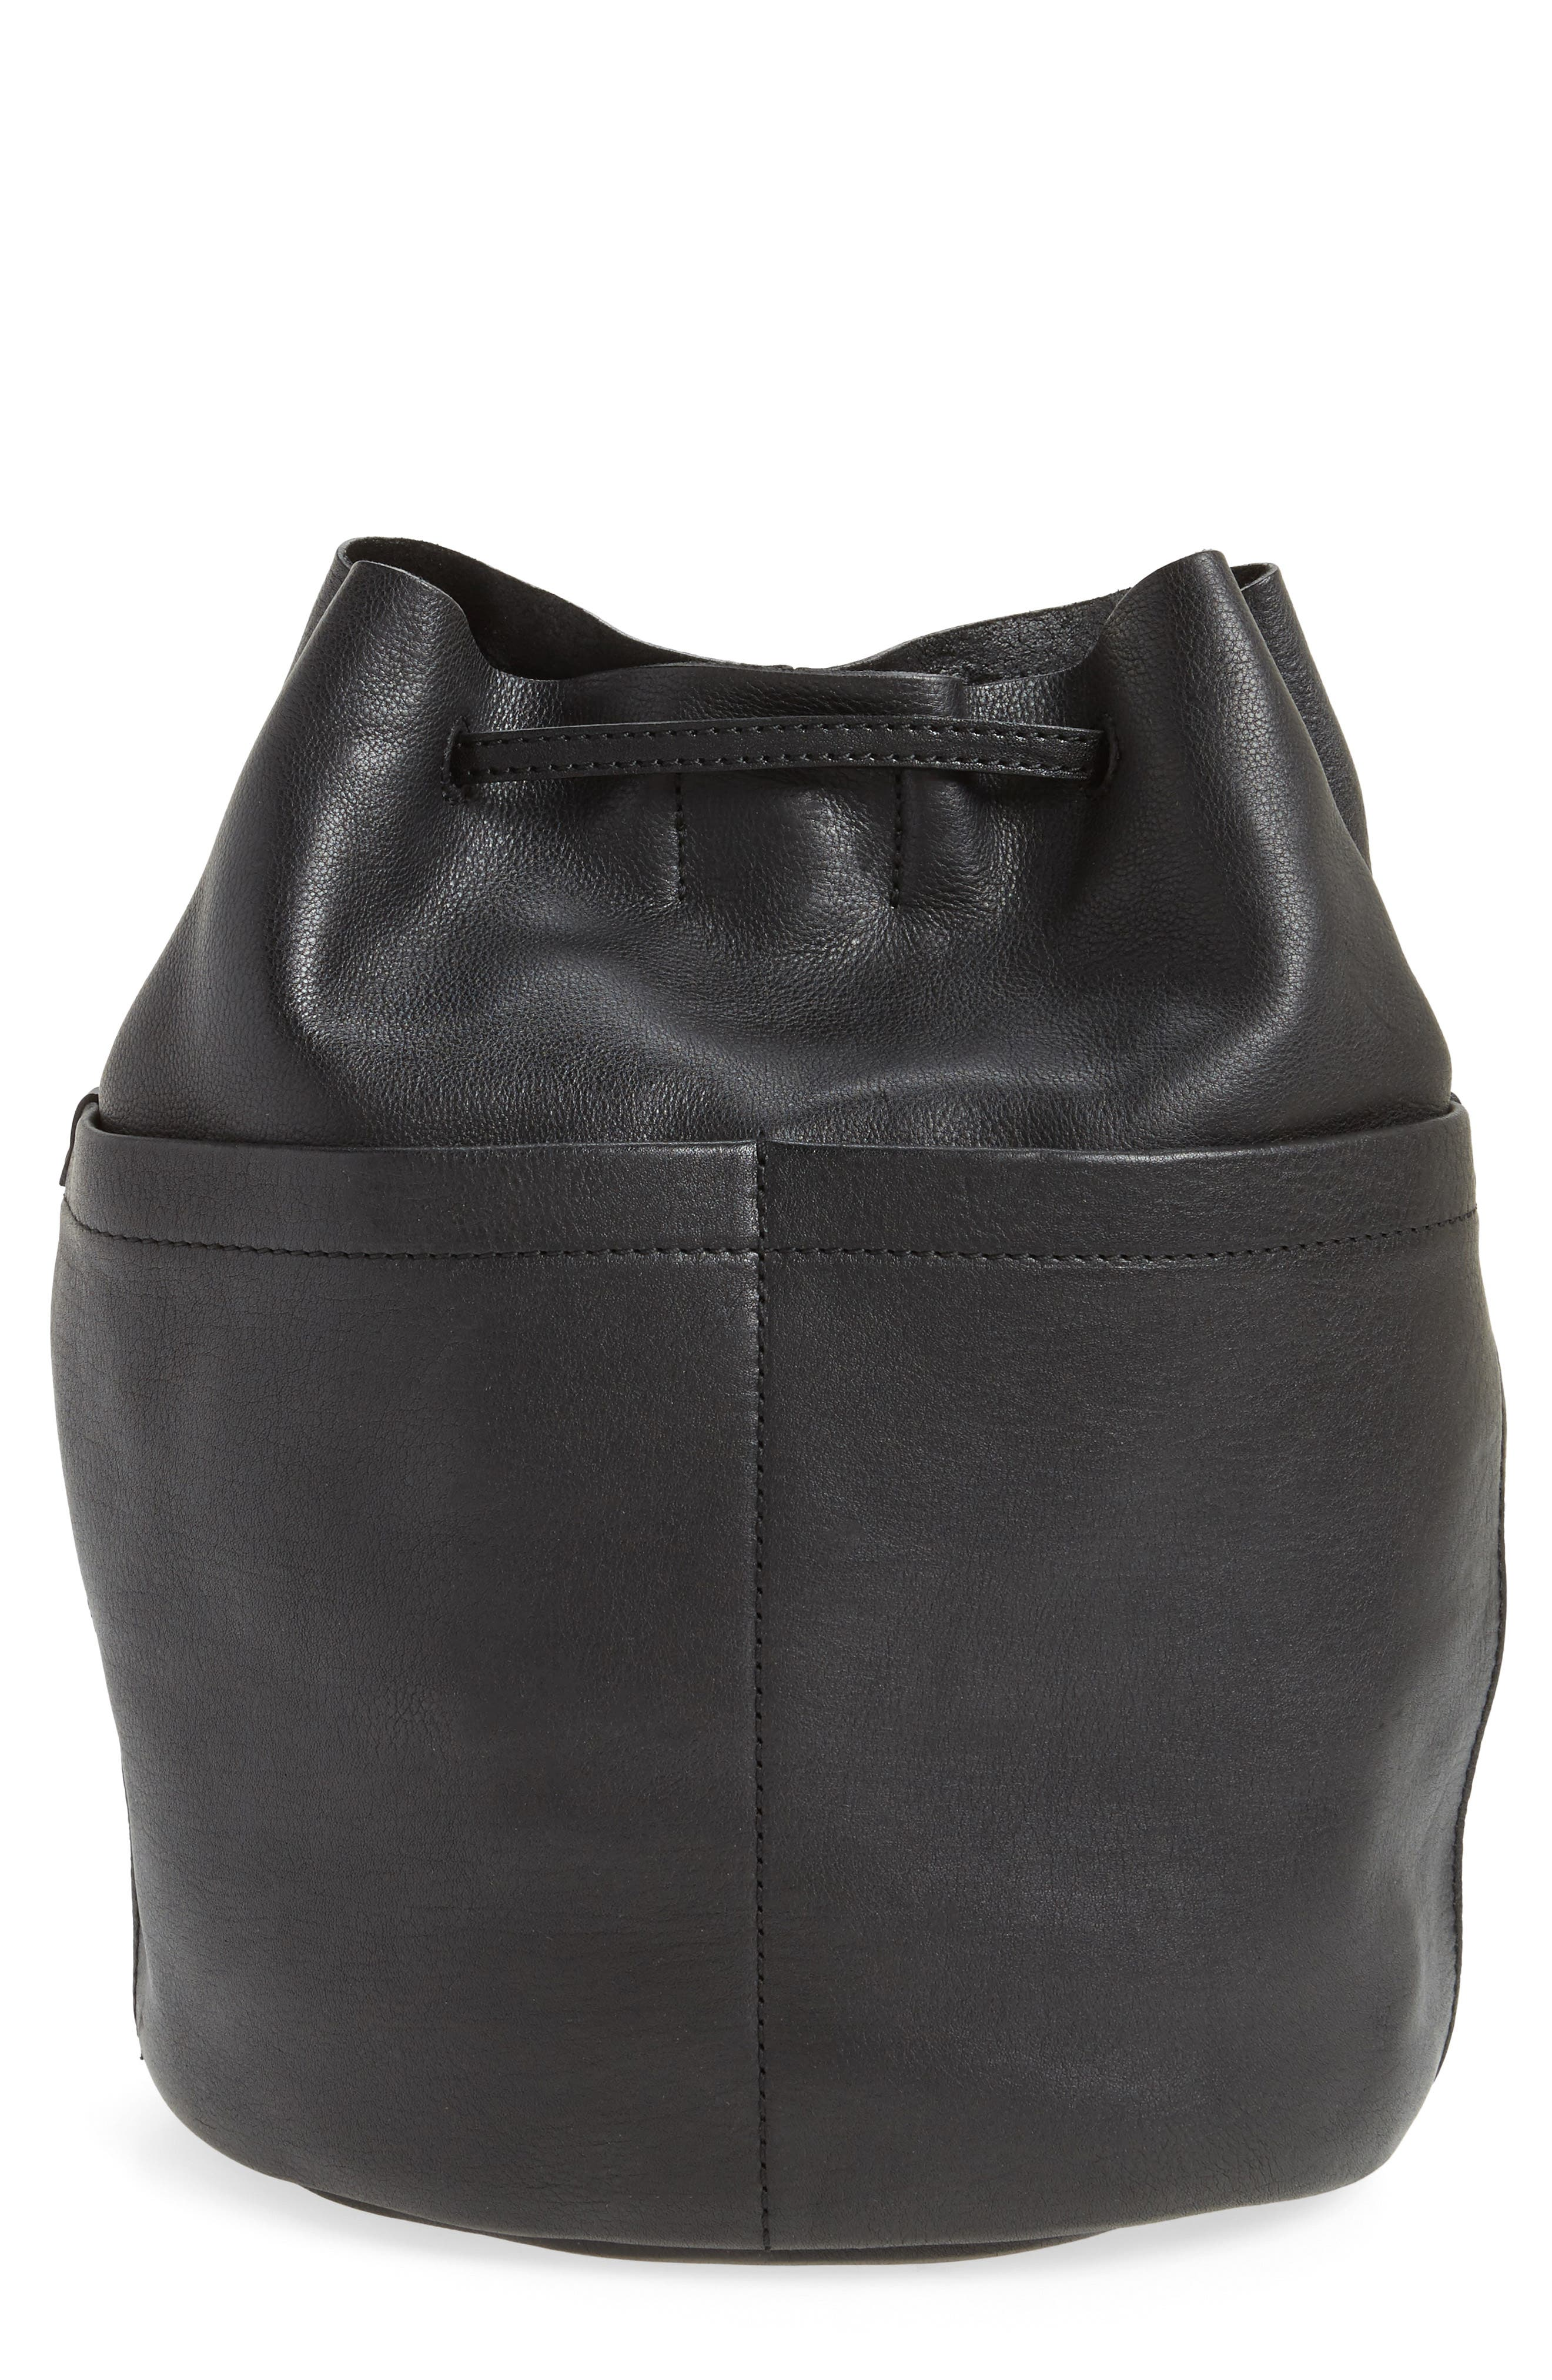 Madewell The Convertible Leather Backpack